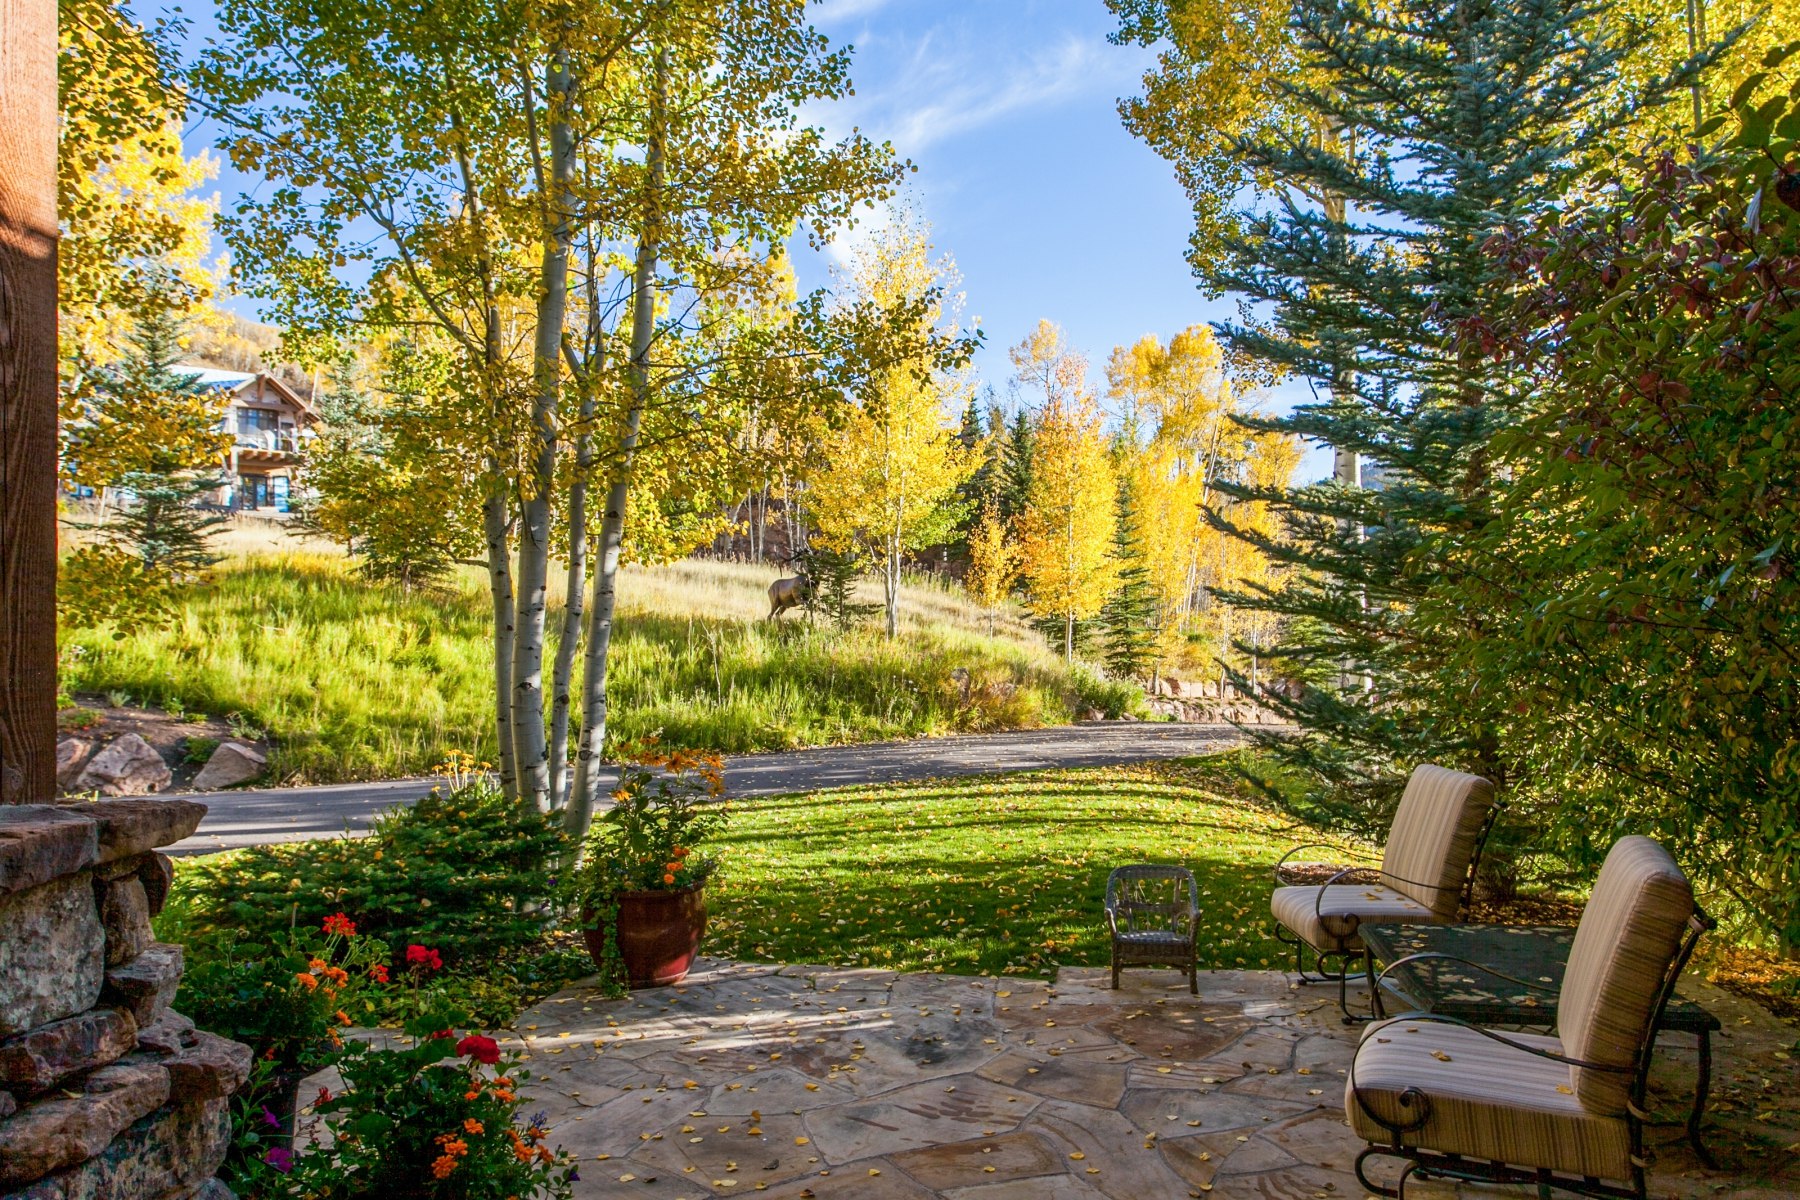 Additional photo for property listing at 1860 Cresta Road 1860 Cresta Road Edwards, Colorado 81632 United States